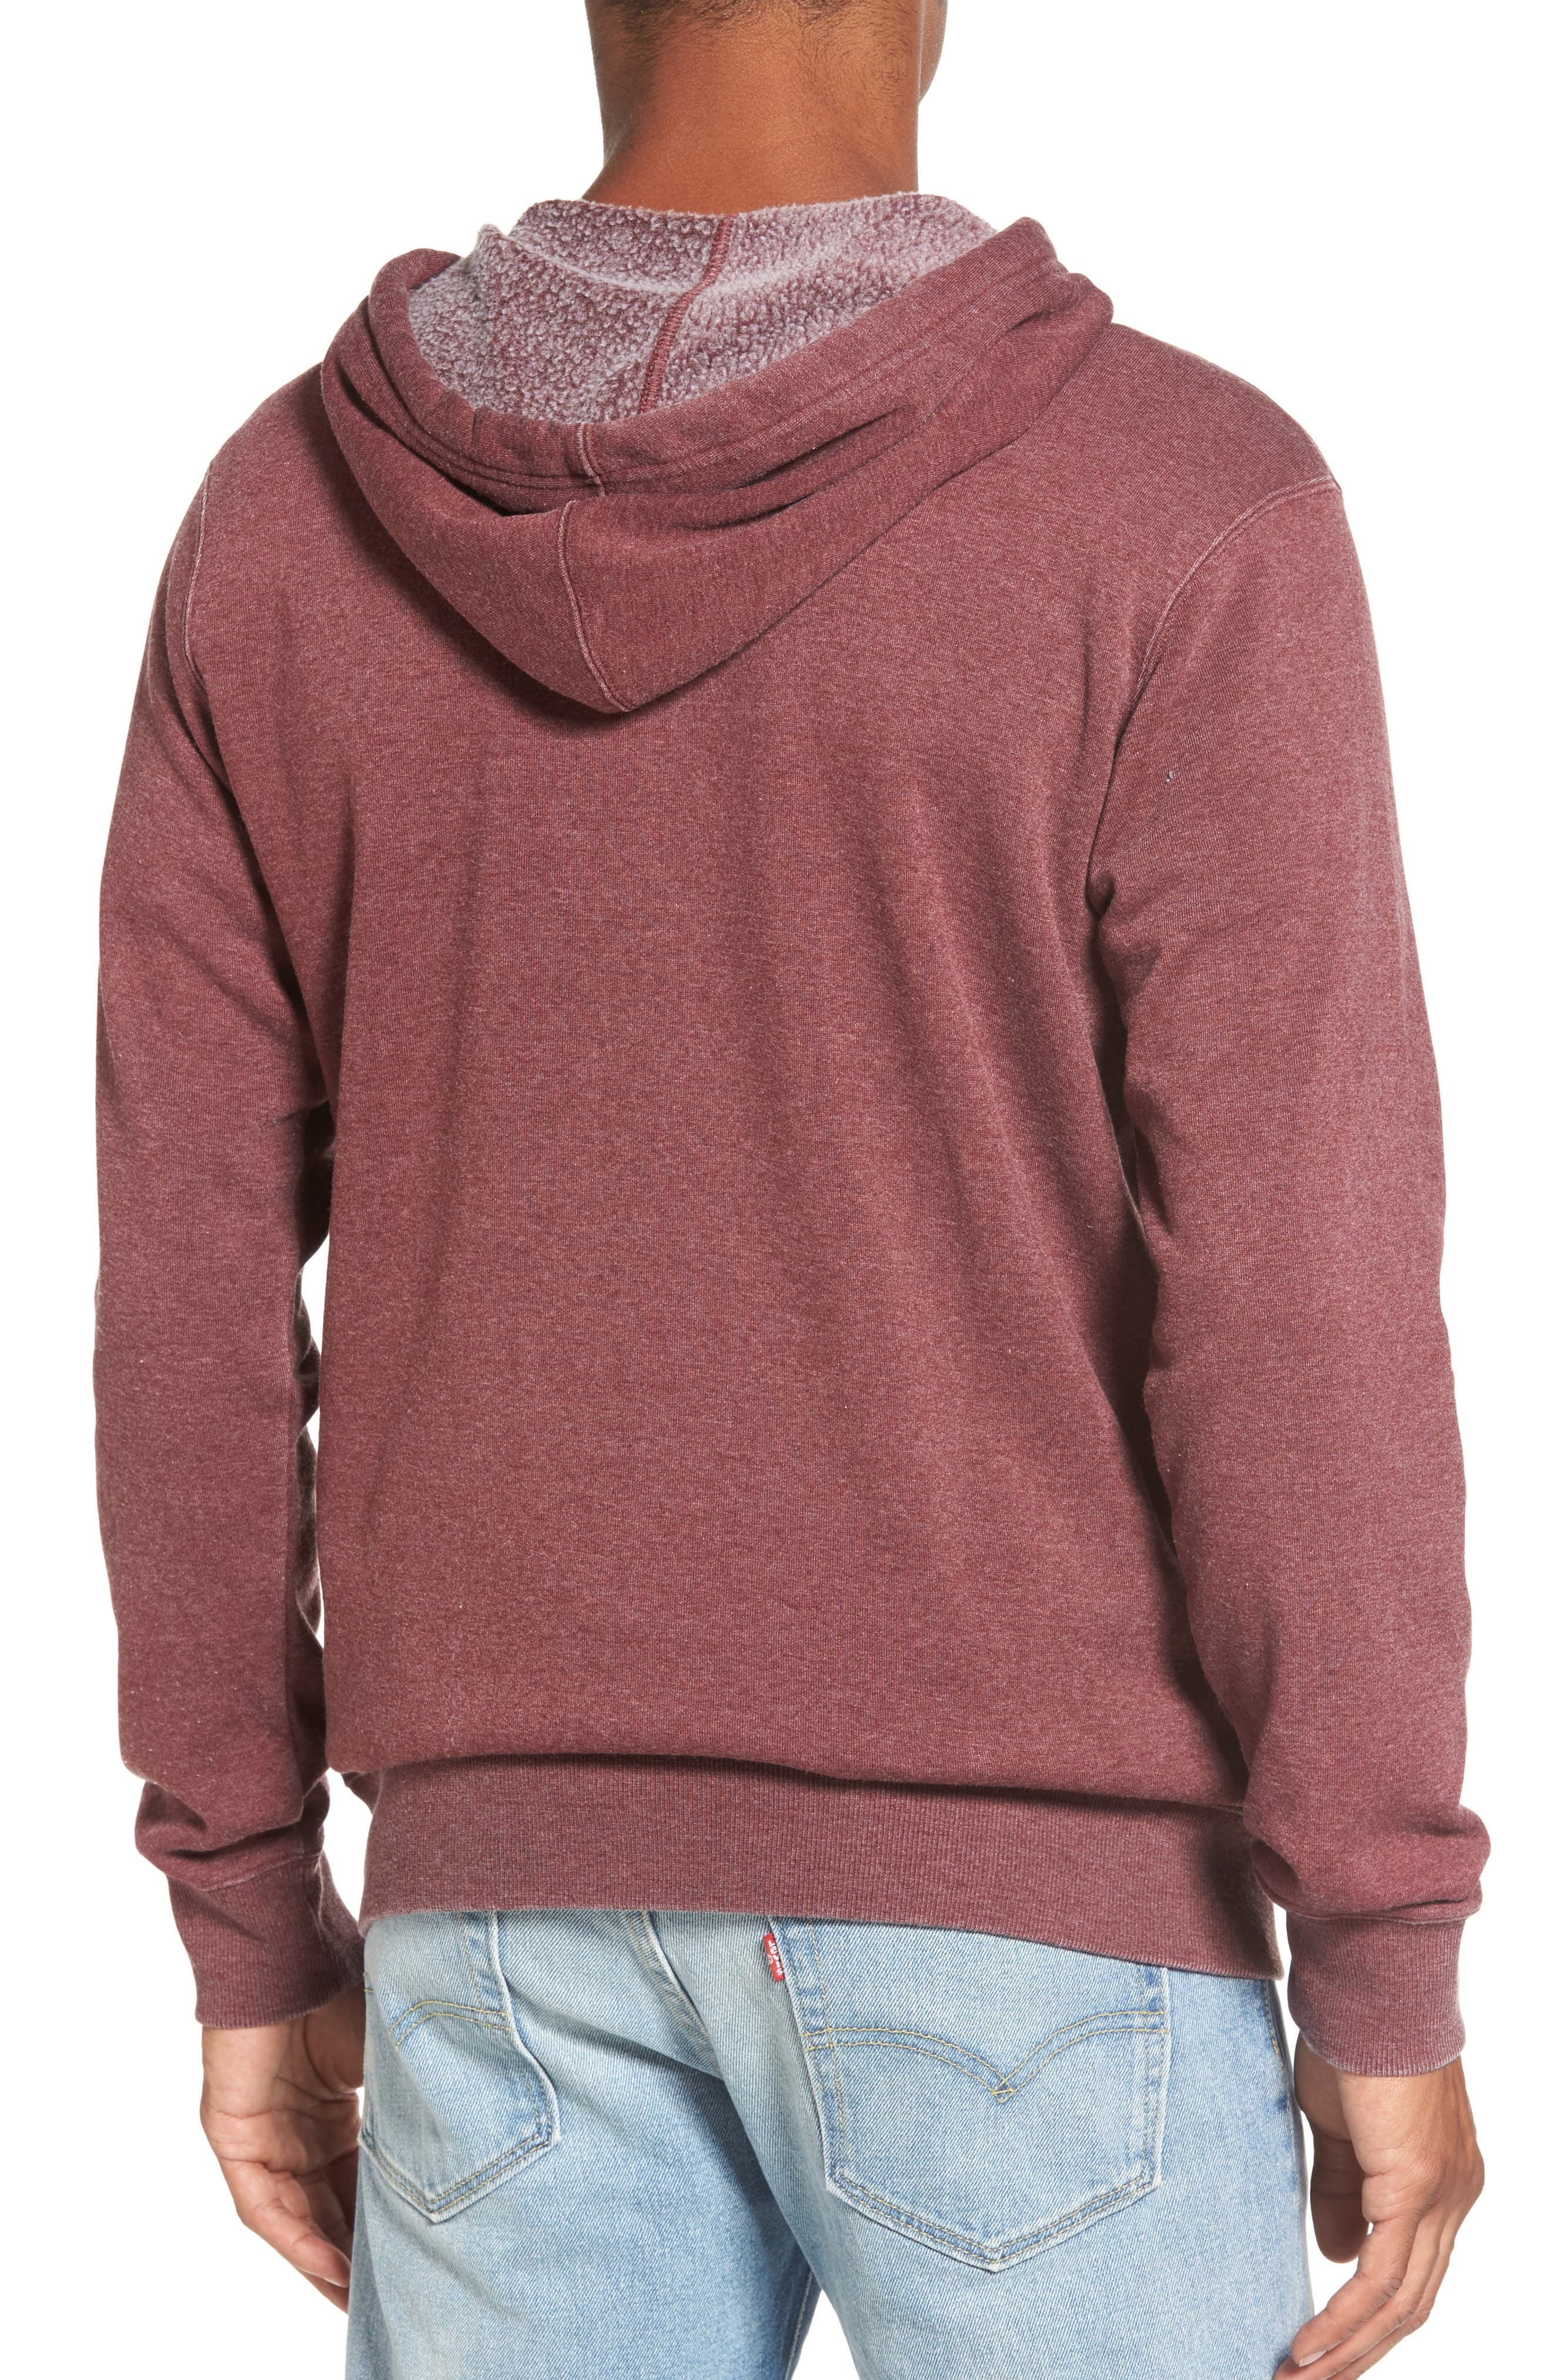 Sunwash Hoodie,                             Alternate thumbnail 2, color,                             Tawny Port